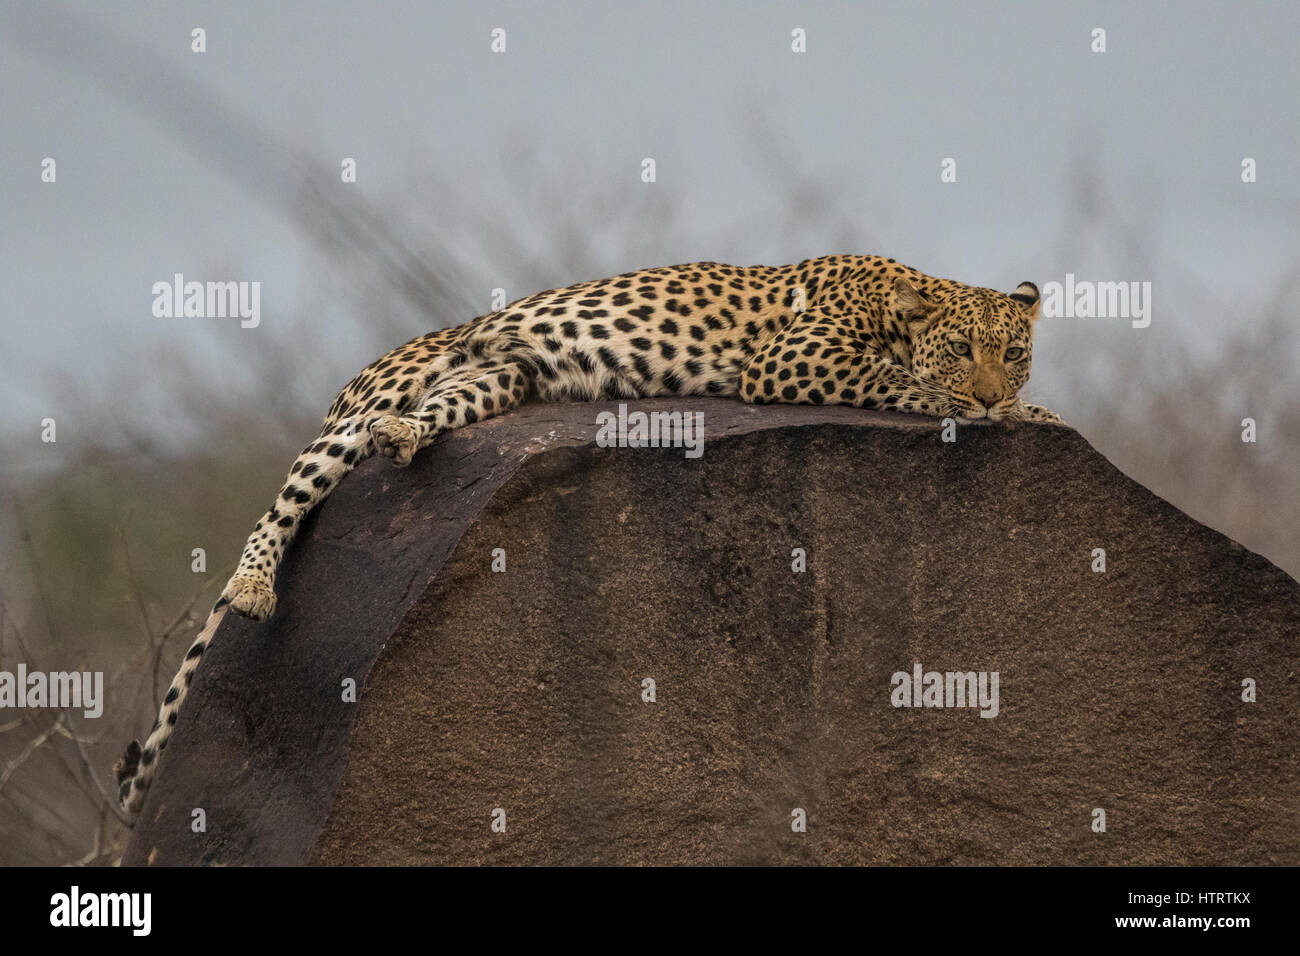 A wild leopard lying on a rock in the evening. - Stock Image